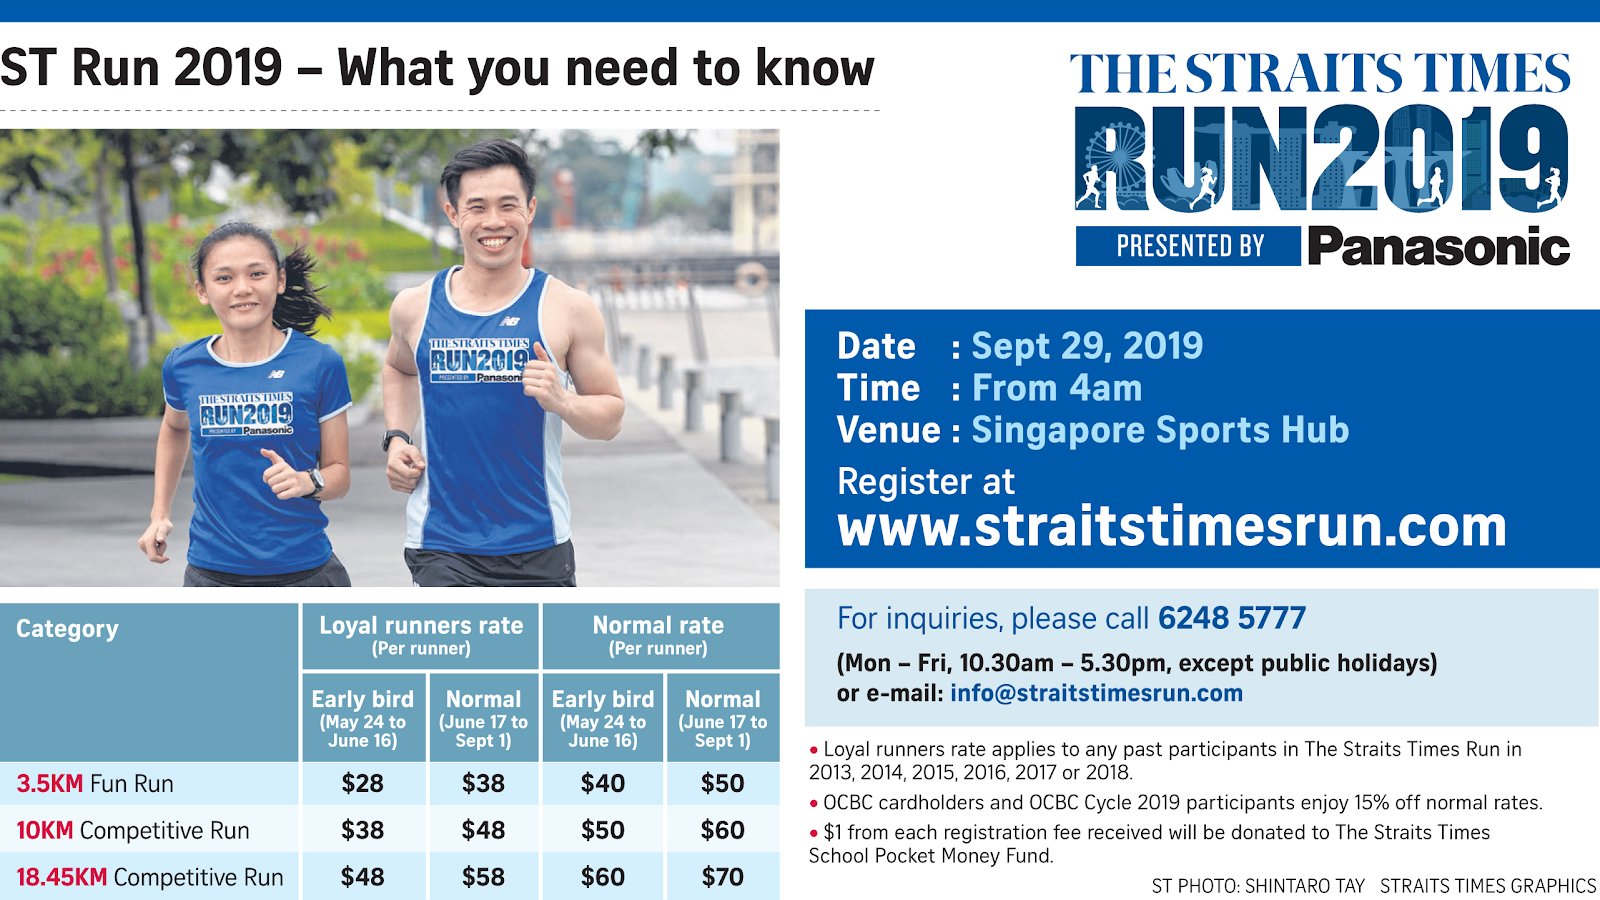 Sports events - The Straits Times Run 2019 held at the Singapore Sports Hub